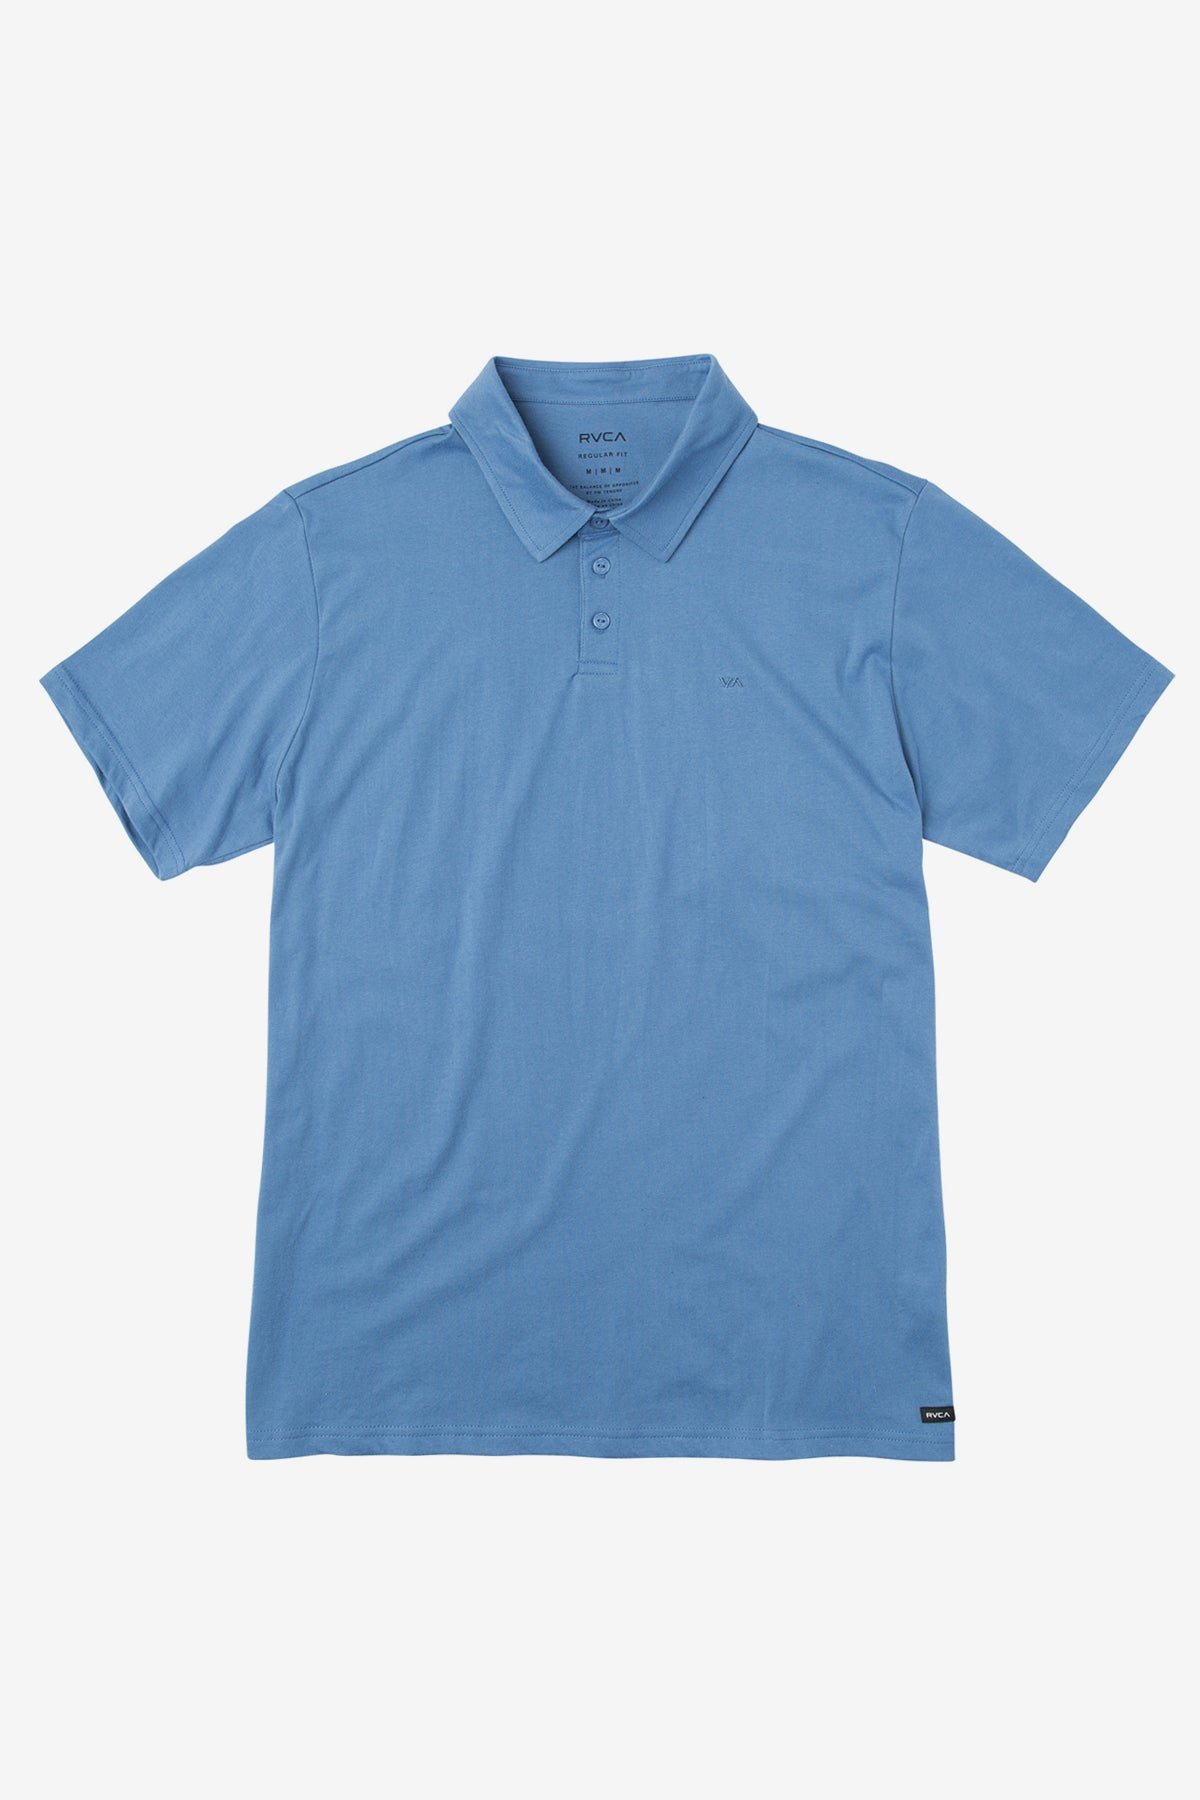 RVCA Sure Thing Boys Polo Shirt - Cobalt